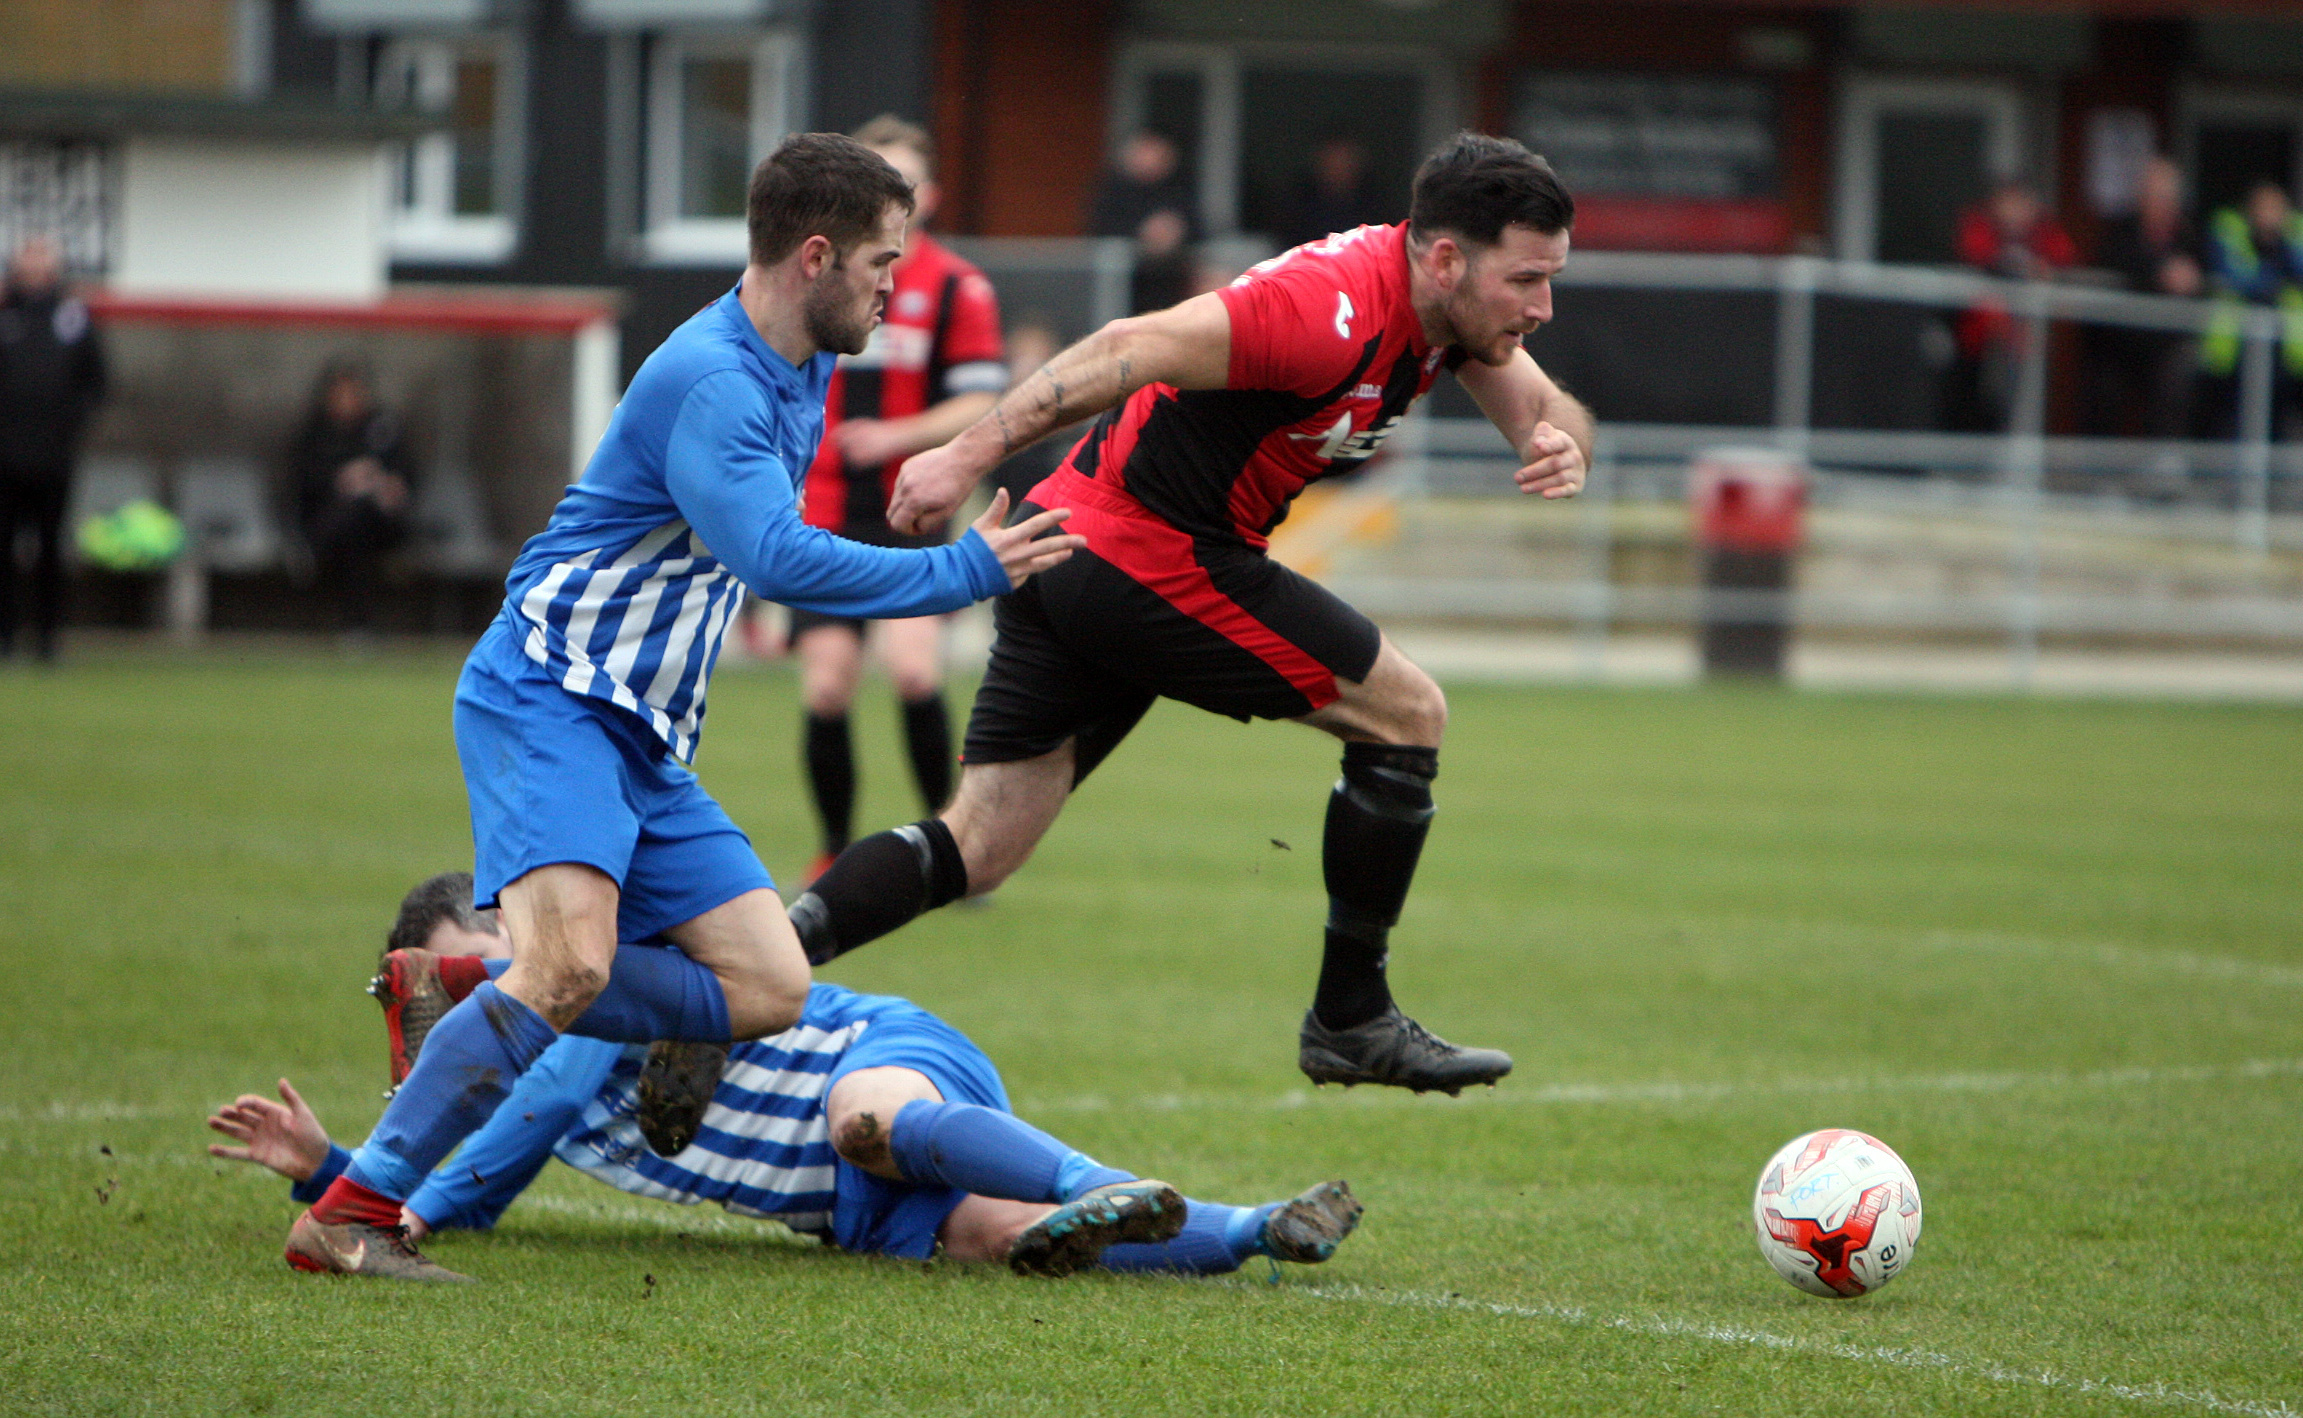 Action from Porthmadog's win over Holyhead Hotspur (Photo by Richard Birch)